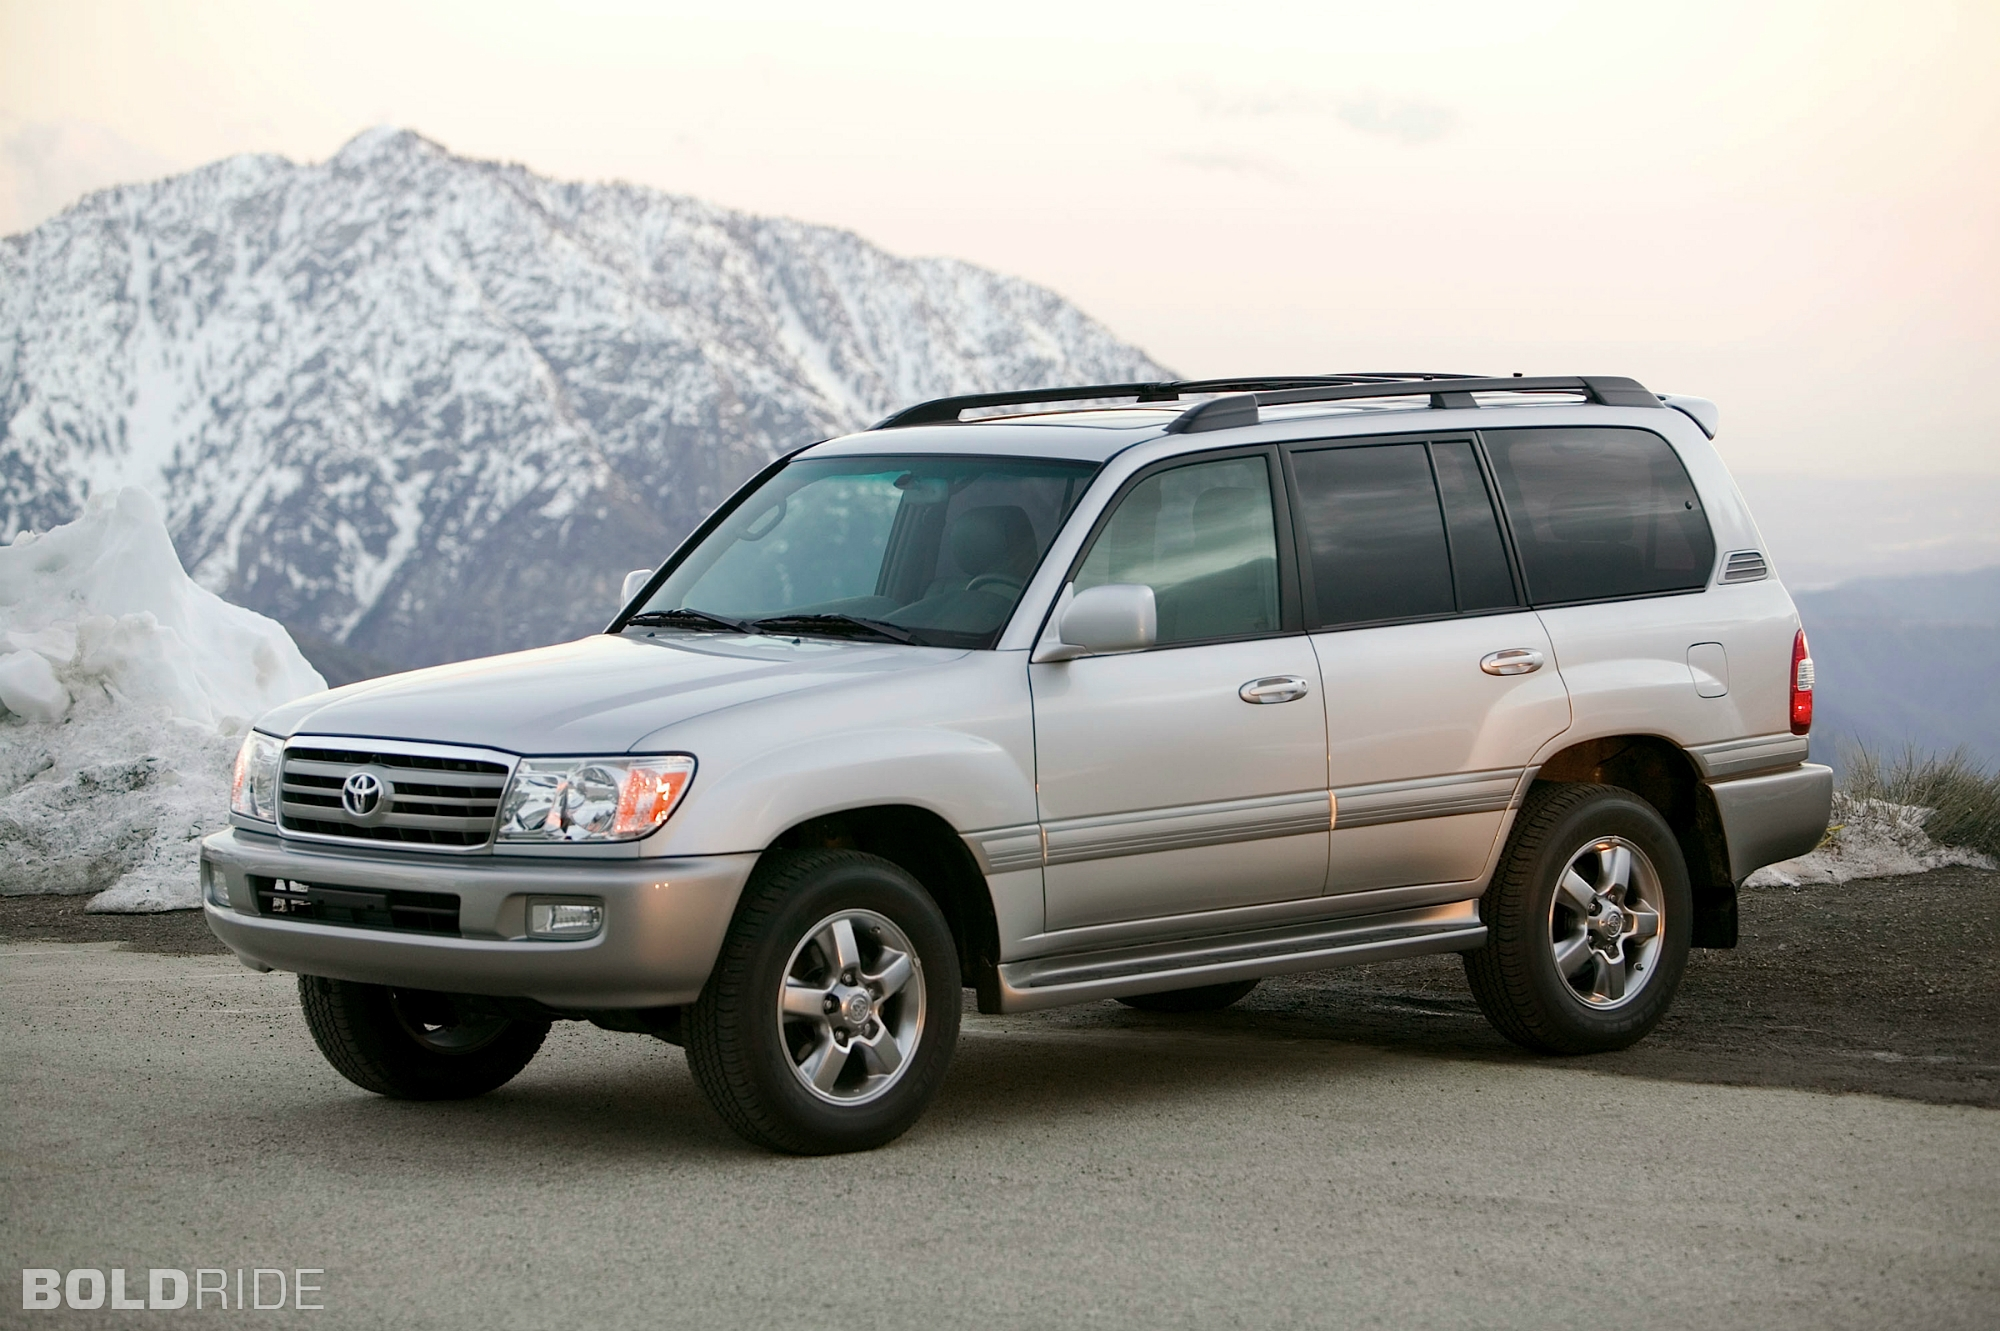 Beautiful 2000 TOYOTA LAND CRUISER   Image #6